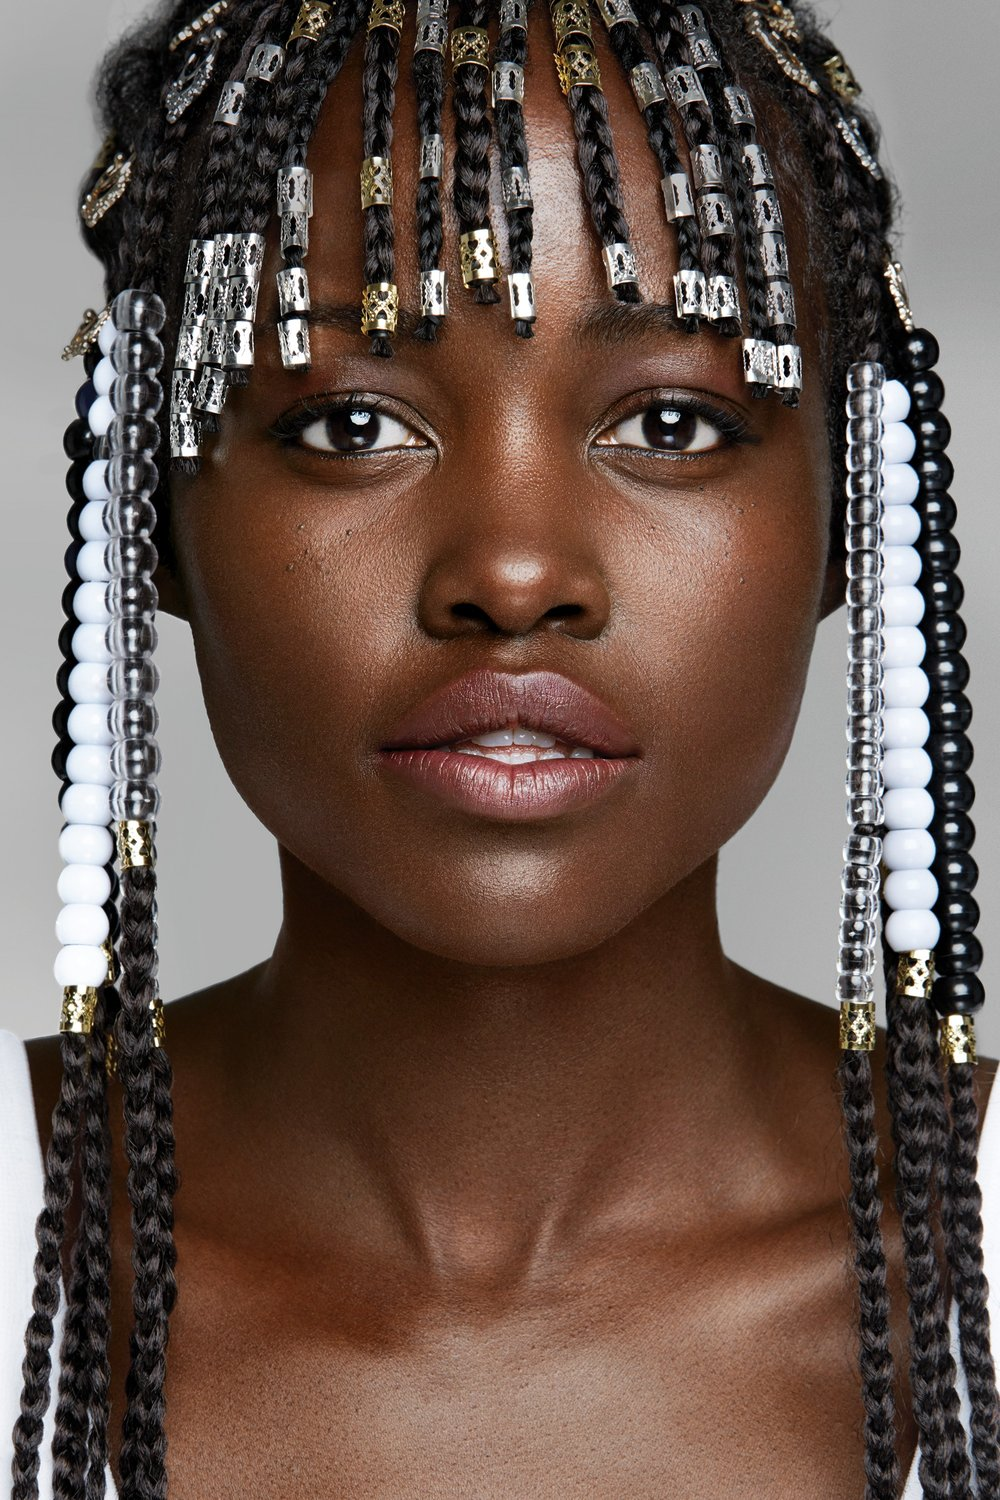 Lupita Nyong'o - Kenyan-Mexican actress known for 12 Years a Slave and Black Panther